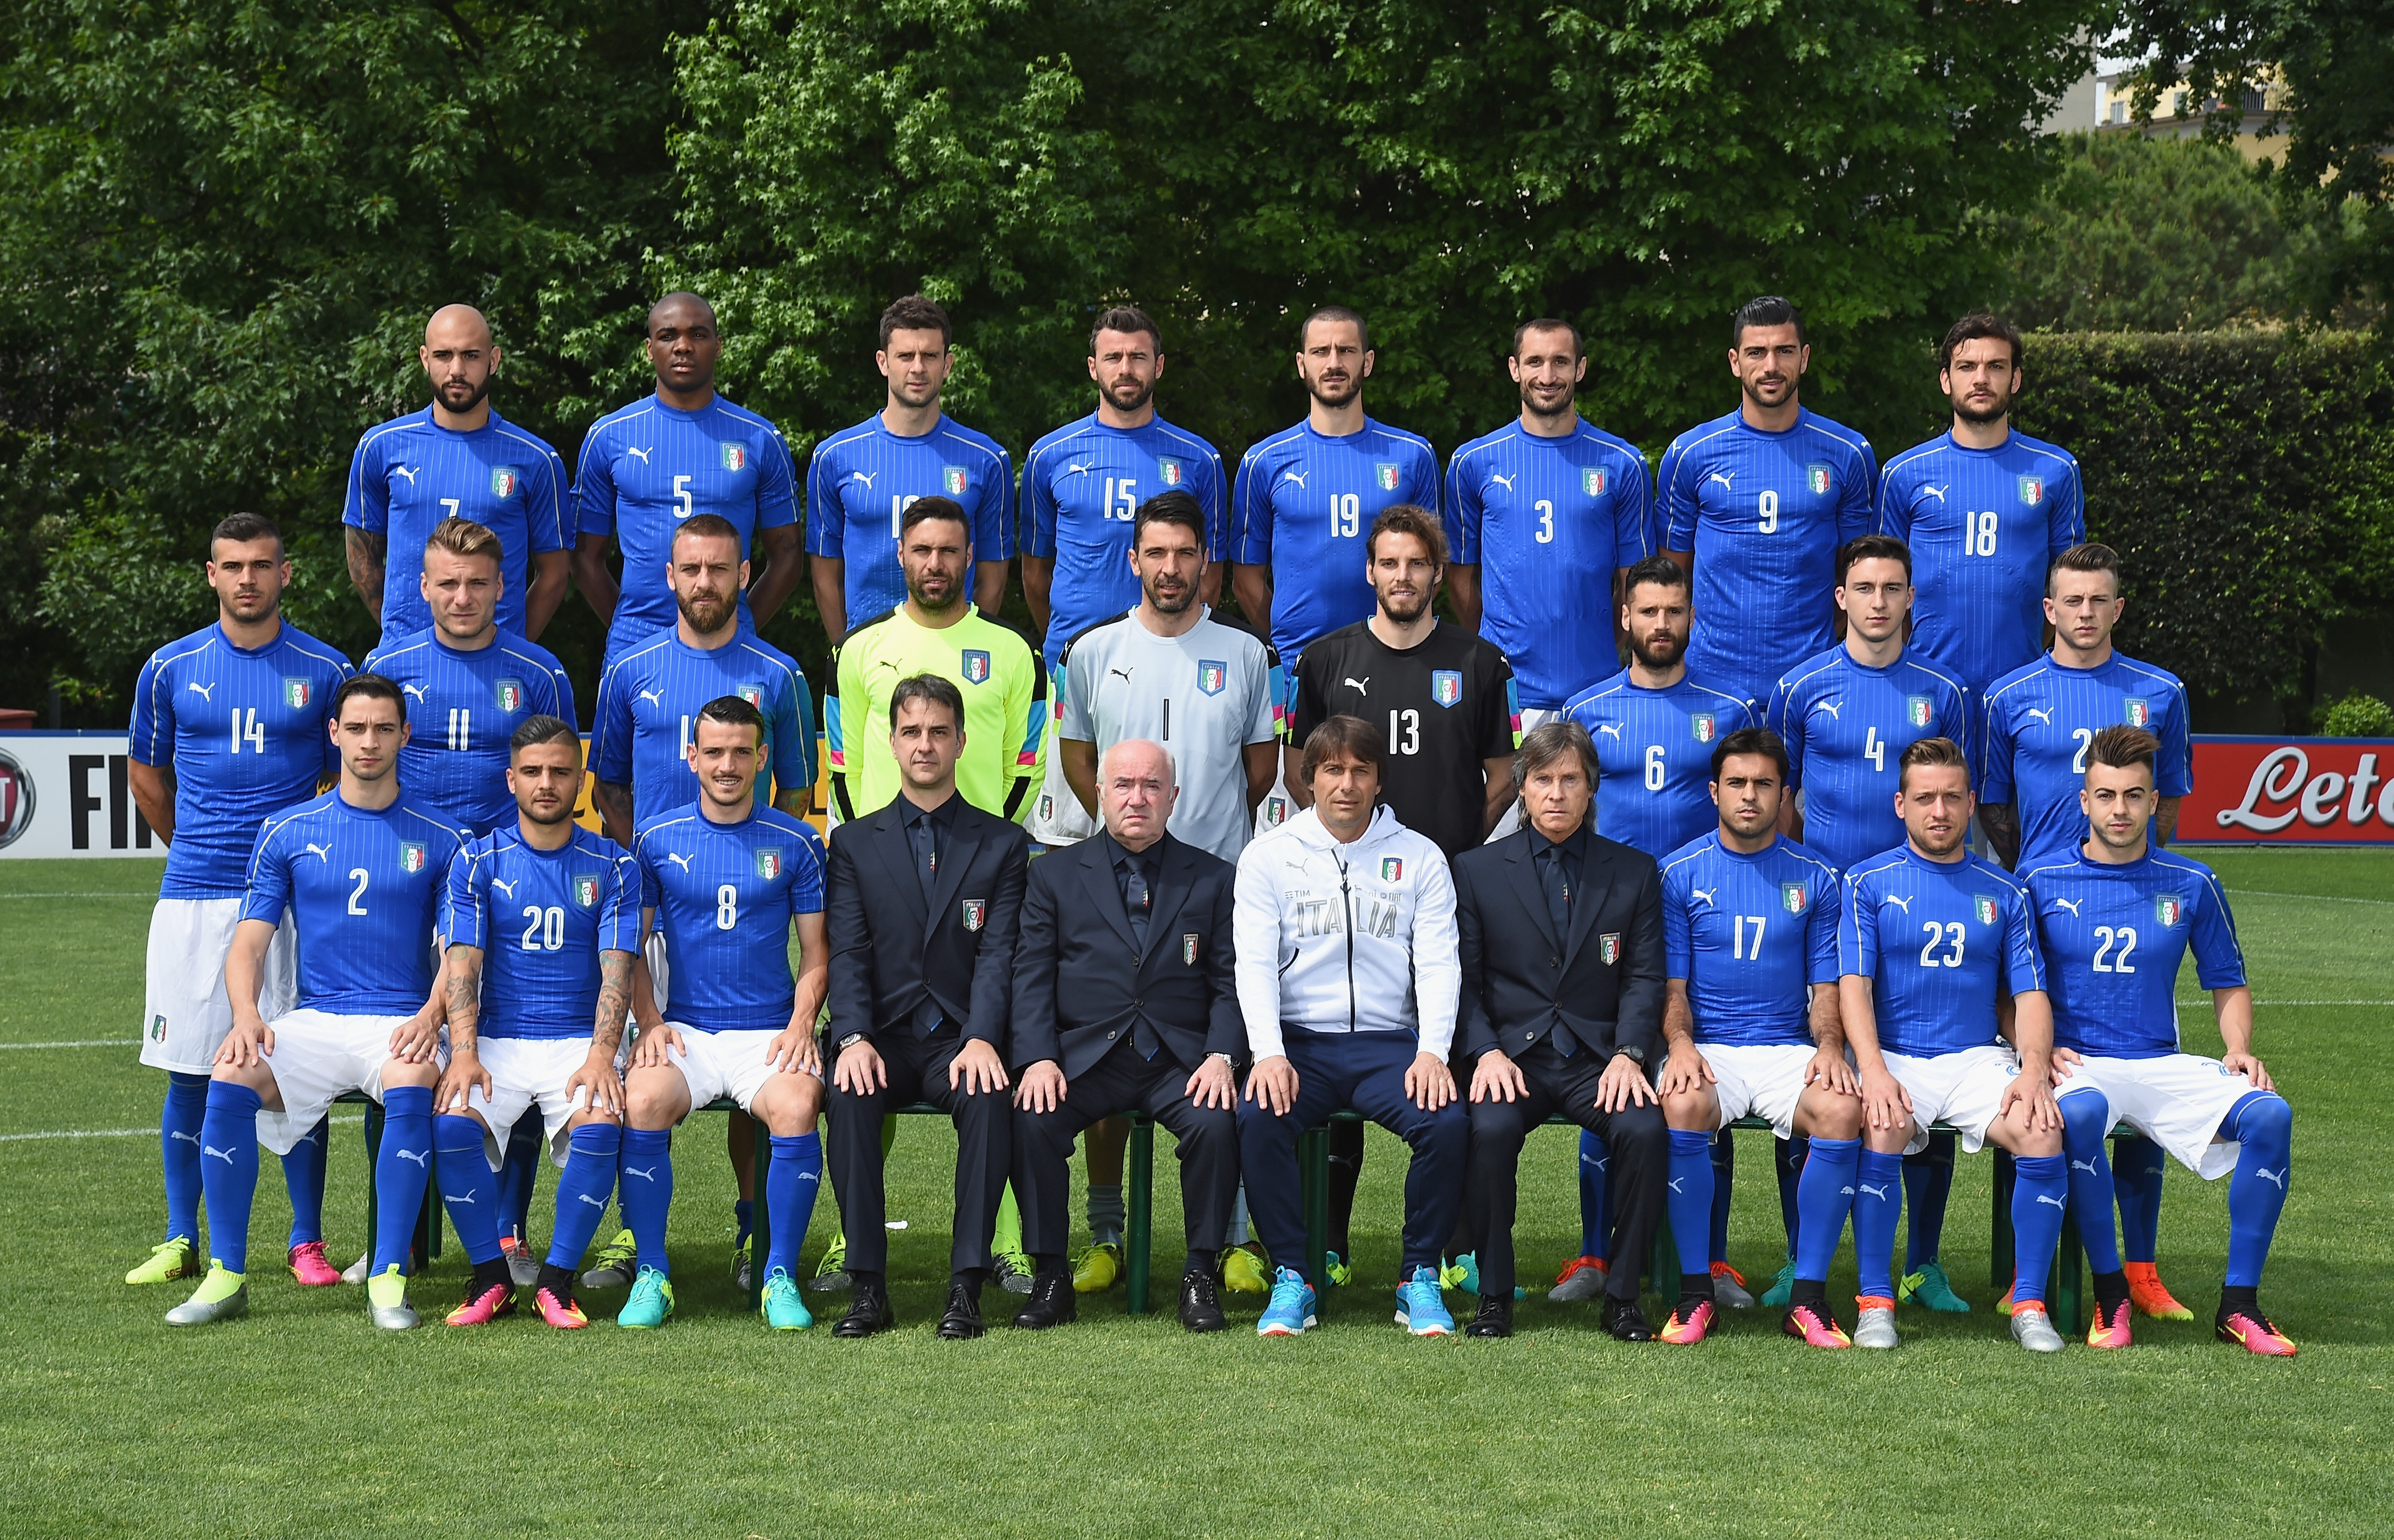 Italy Official Team Photo